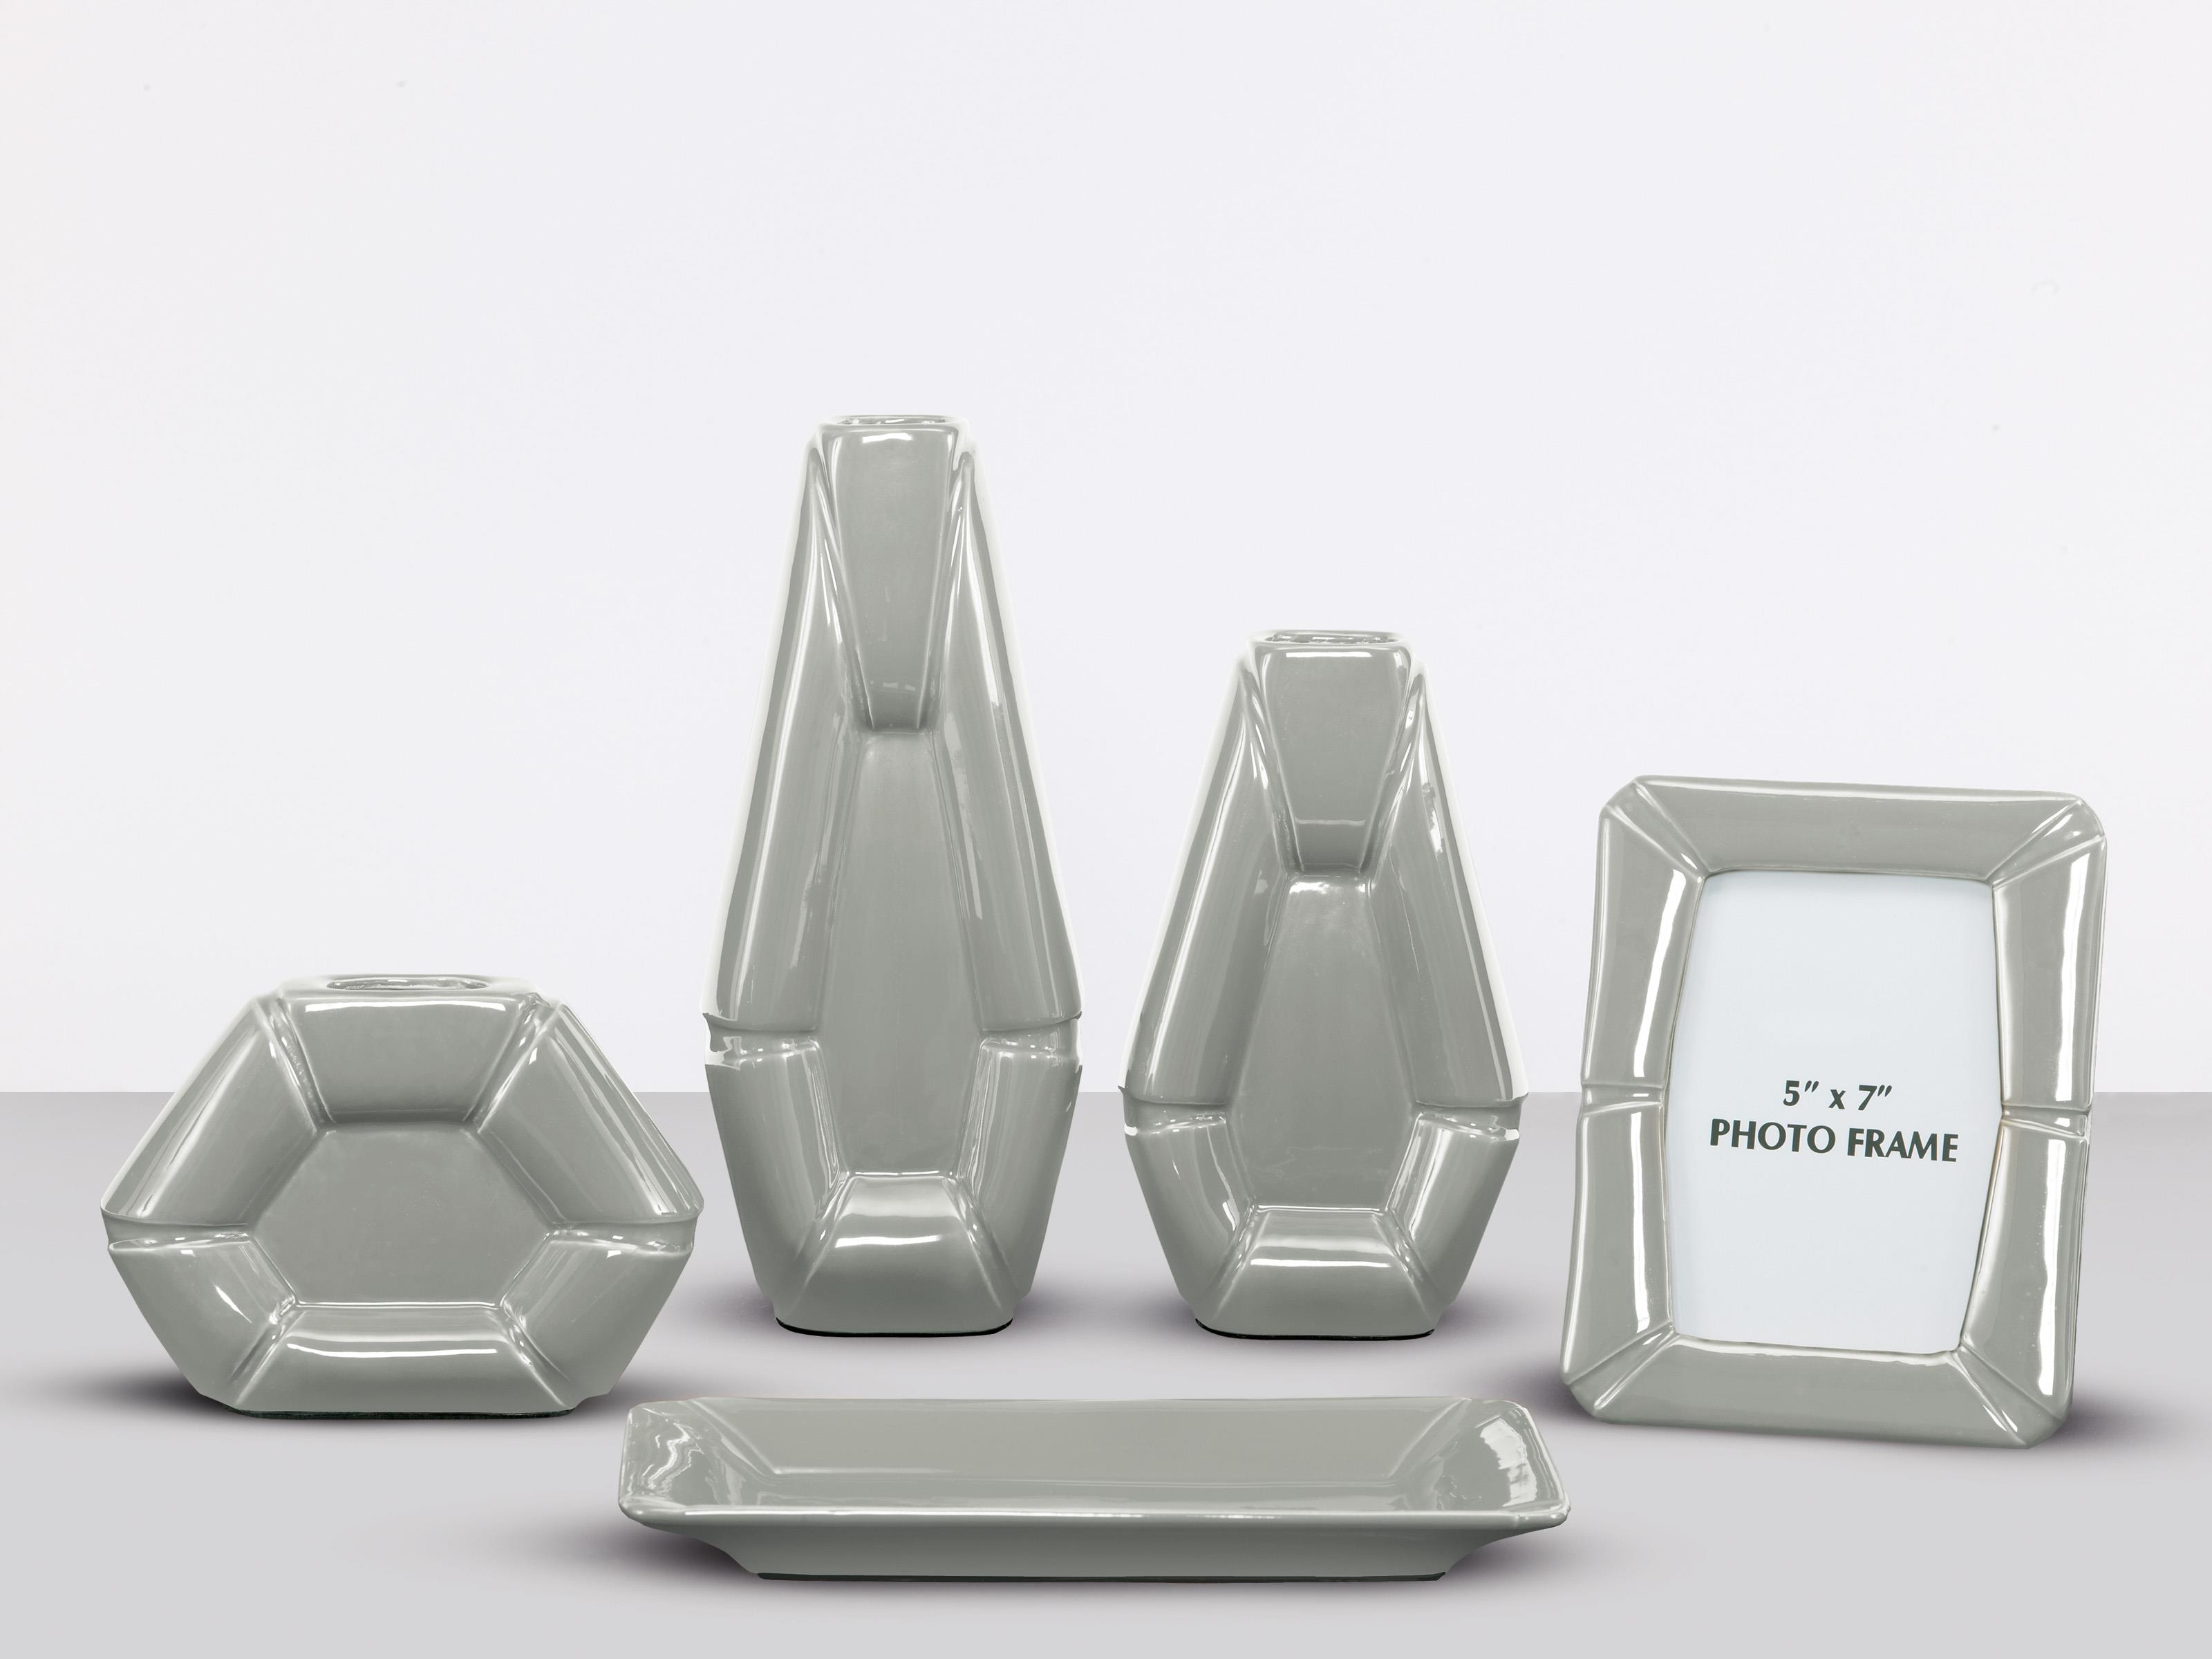 Signature Design by Ashley Furniture Accents Table Top Accessories - Gray - Item Number: A2C00114